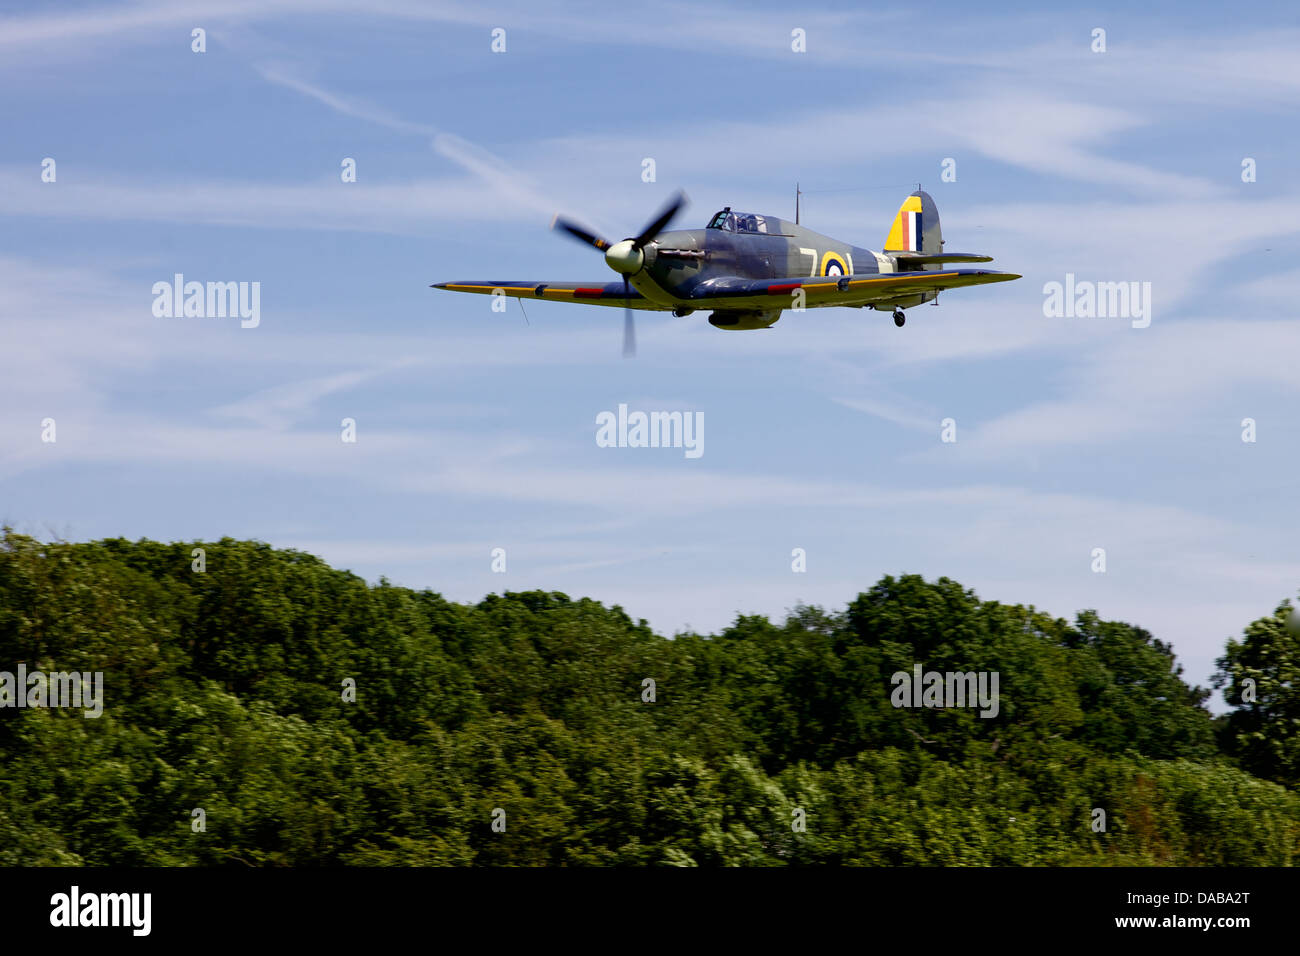 A 1941 Hawker sea Hurricane flying low at an air display, England - Stock Image